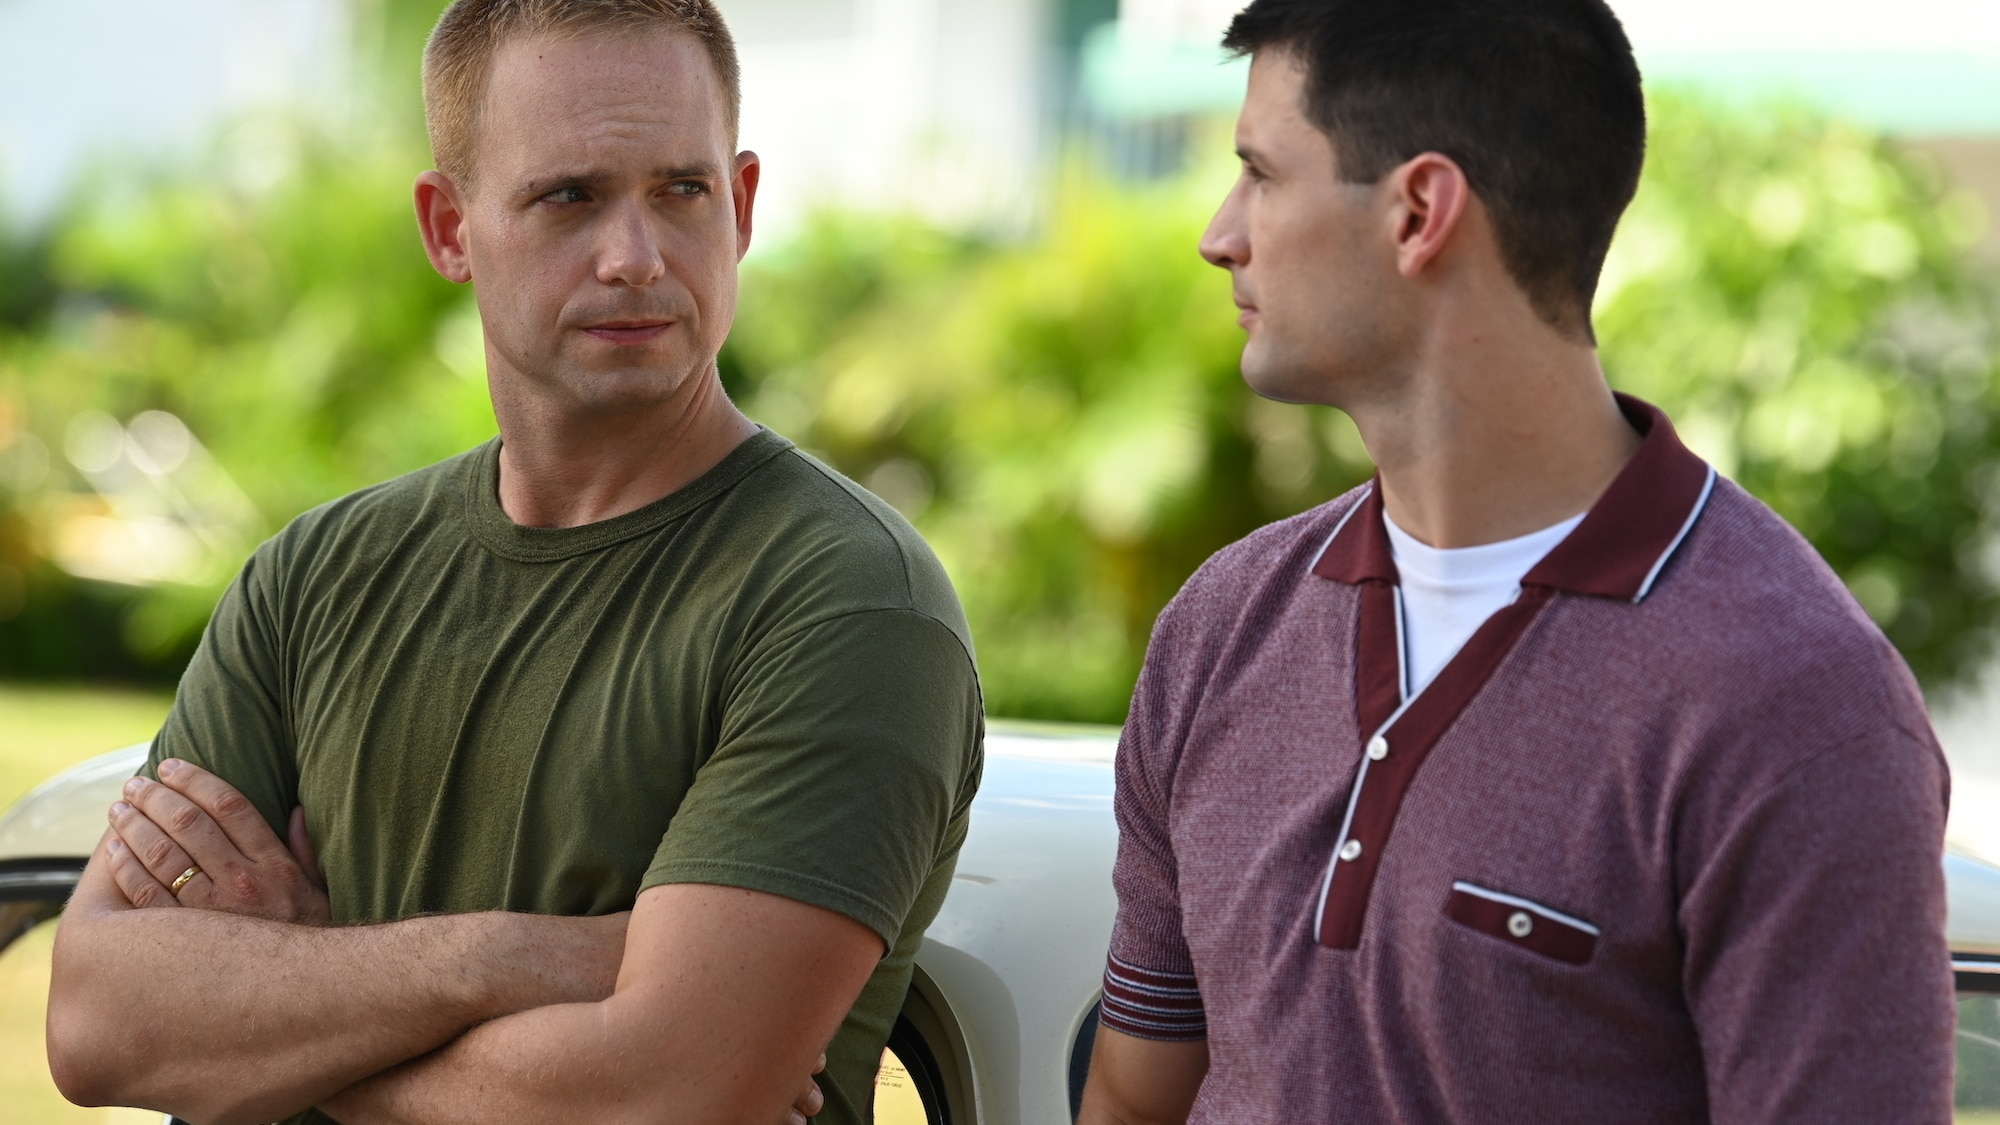 L to R: John Glenn played by Patrick J. Adams shares encouraging words with Scott Carpenter played by James Lafferty in National Geographic's THE RIGHT STUFF streaming on Disney+. (National Geographic/Gene Page)